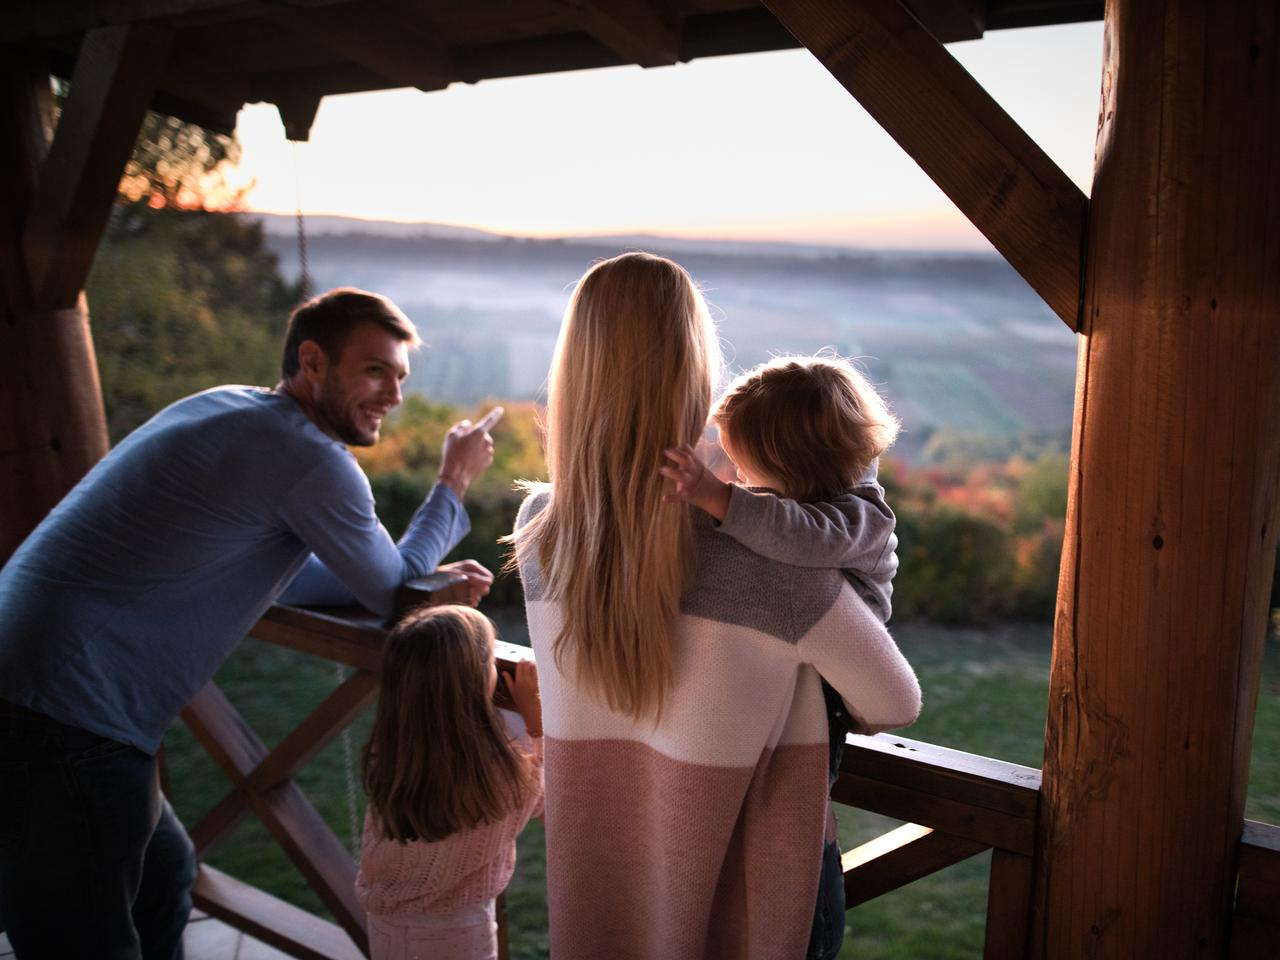 Family standing together on a balcony while father is pointing at distance. Focus is on mother and son.